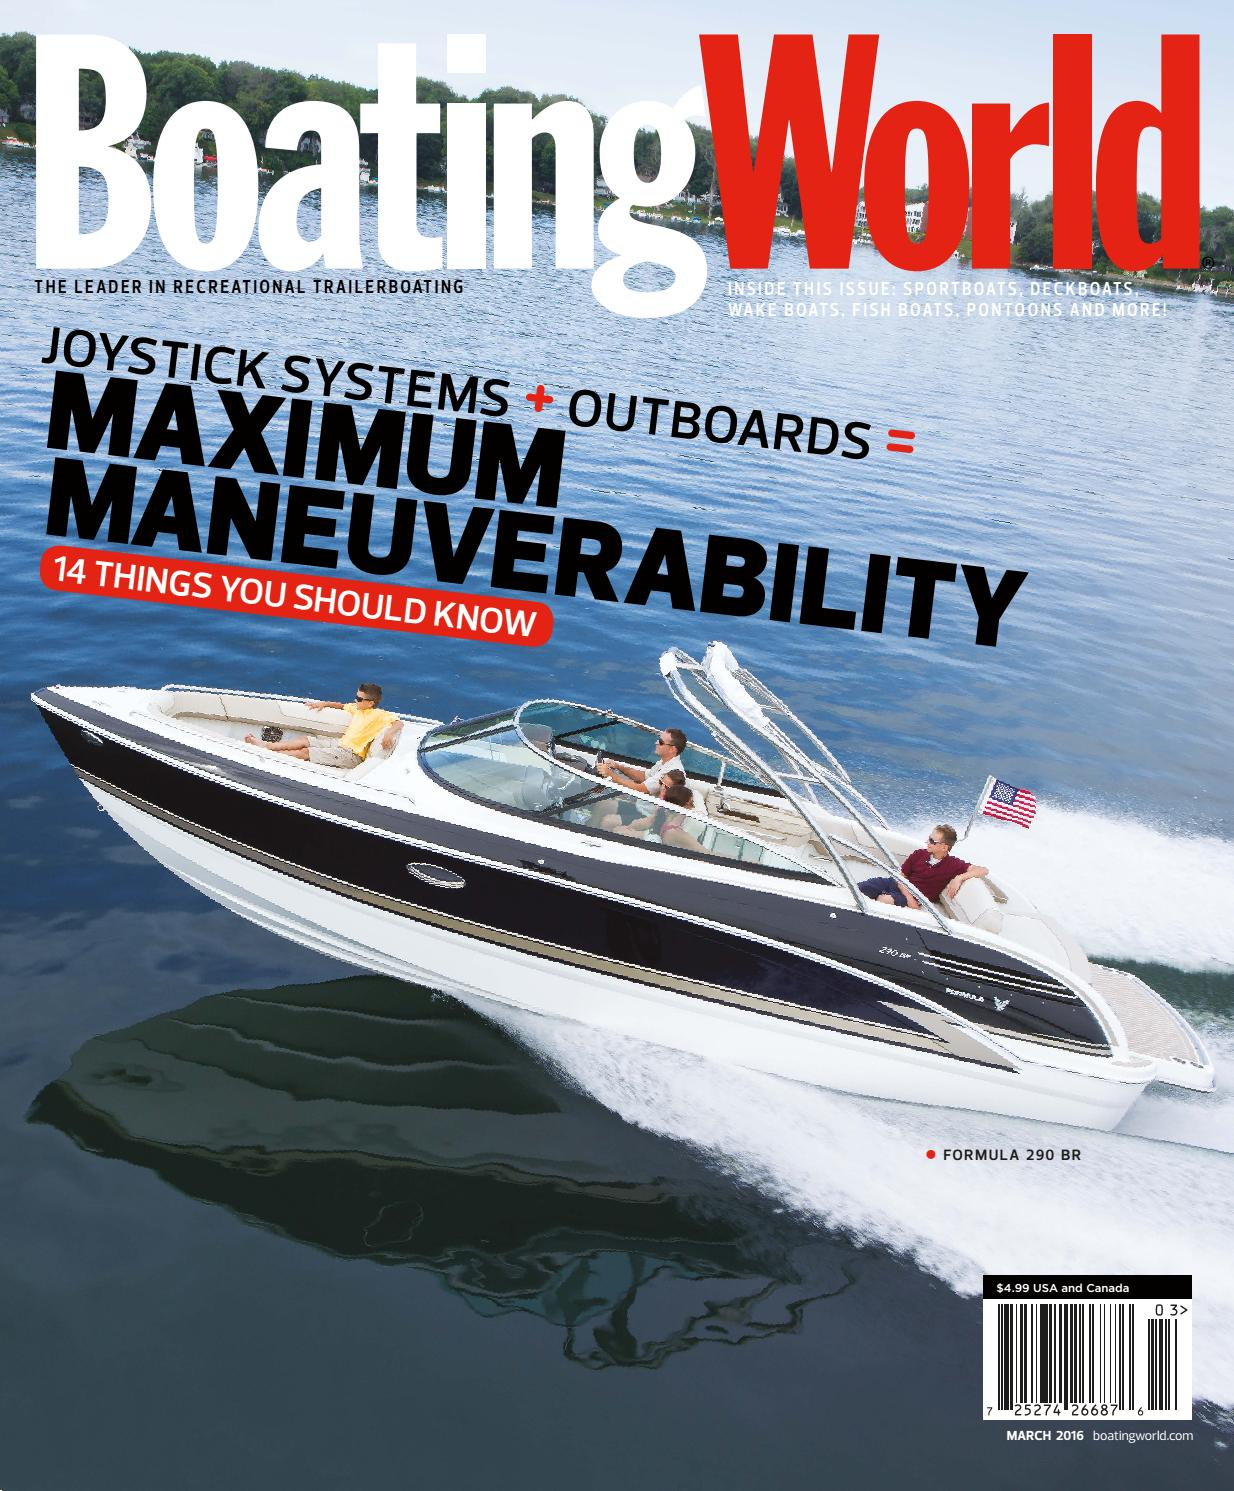 page_1 march 2016 boating world magazine by duncan mcintosh company issuu  at mr168.co